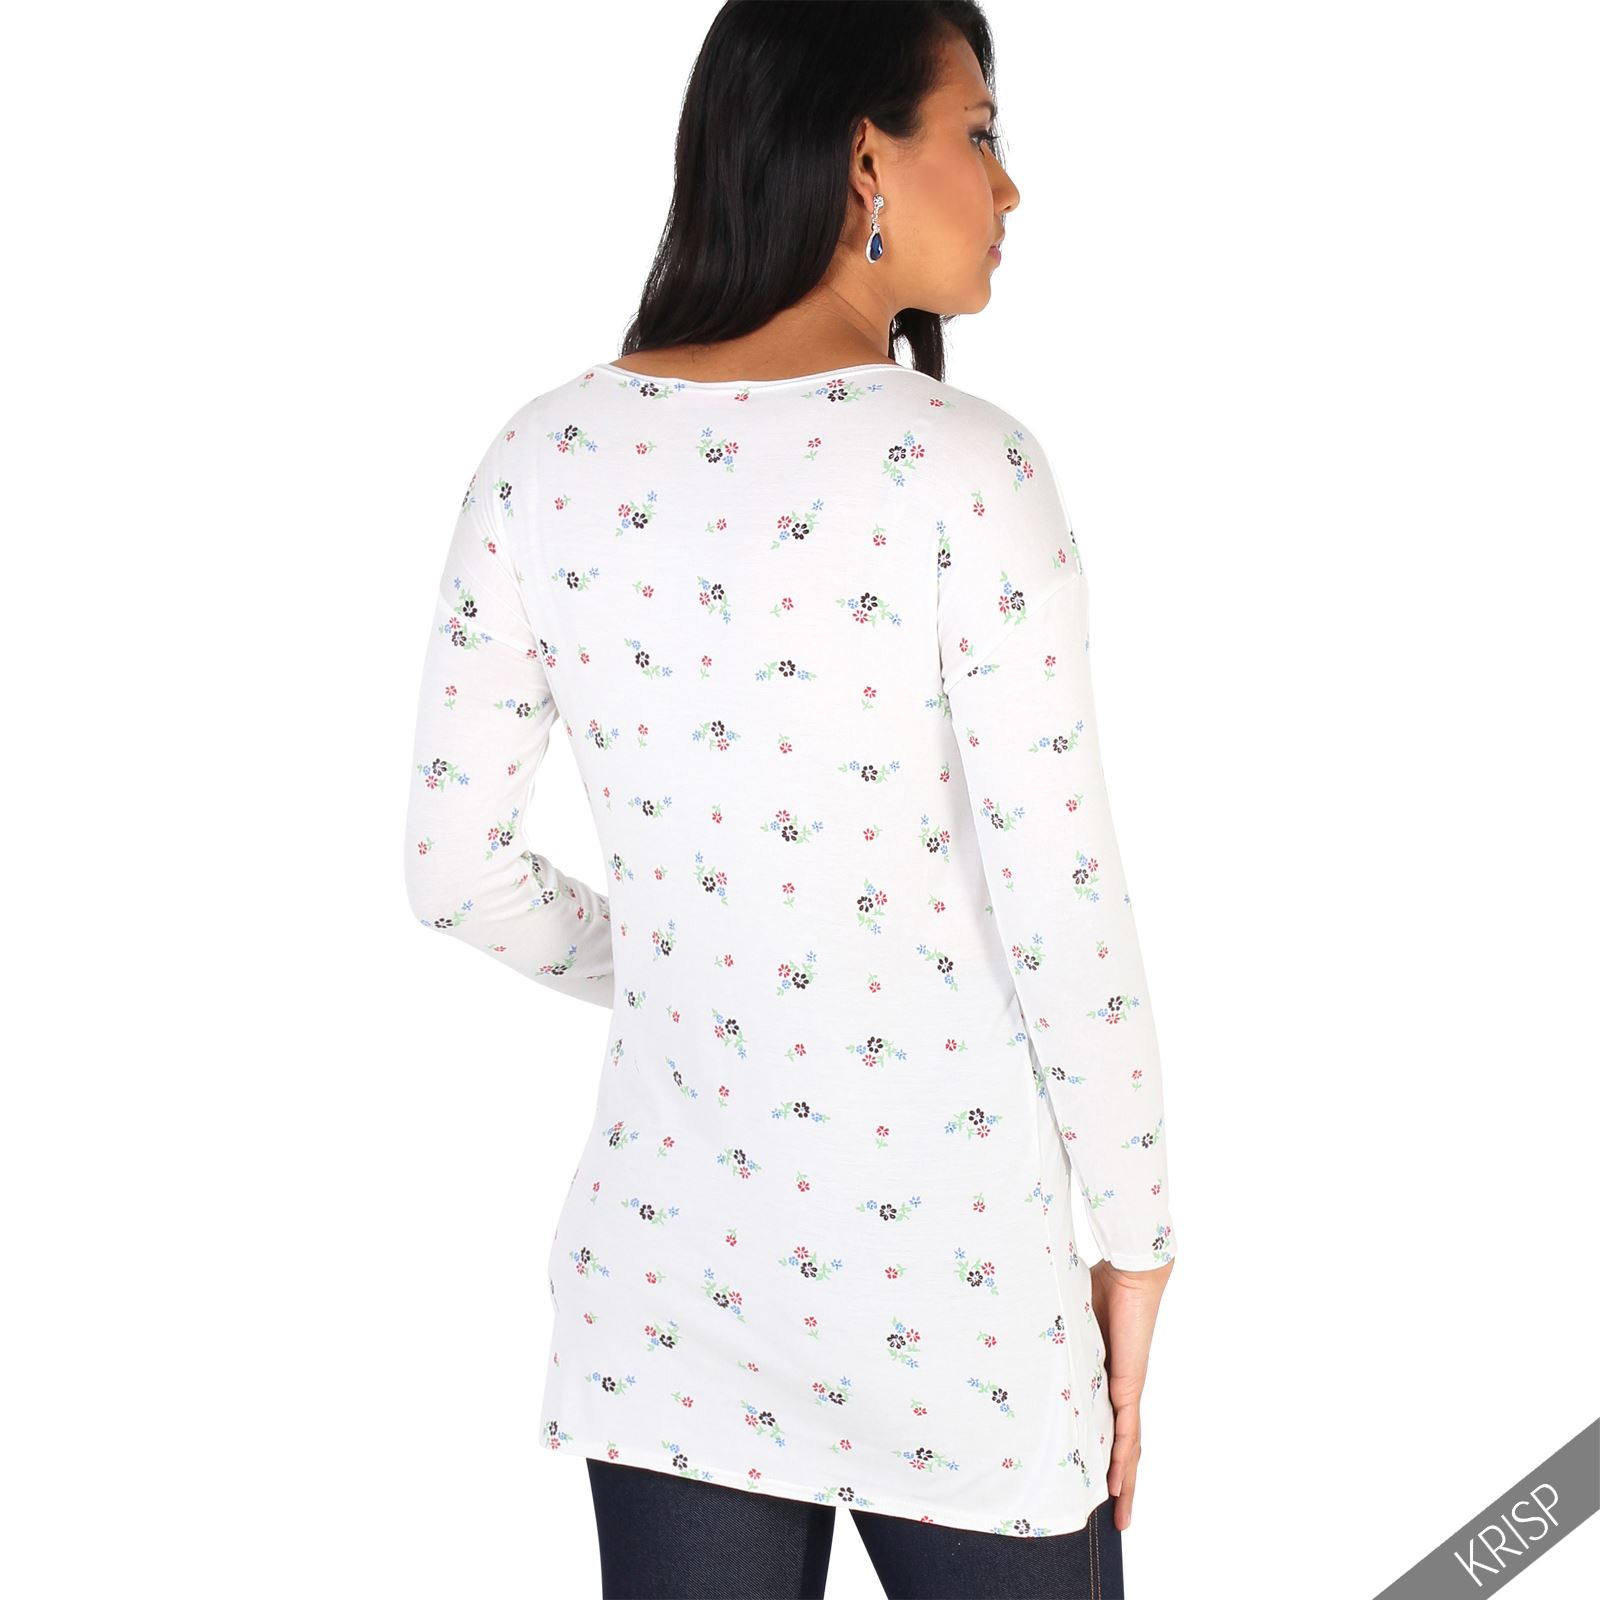 Maternity Tops Shop from the top. maternity blouses, tees, tanks and more. Top off your wardrobe with our wide variety of affordable maternity tops, t-shirts, tunics, sweaters and side-ruched styles.